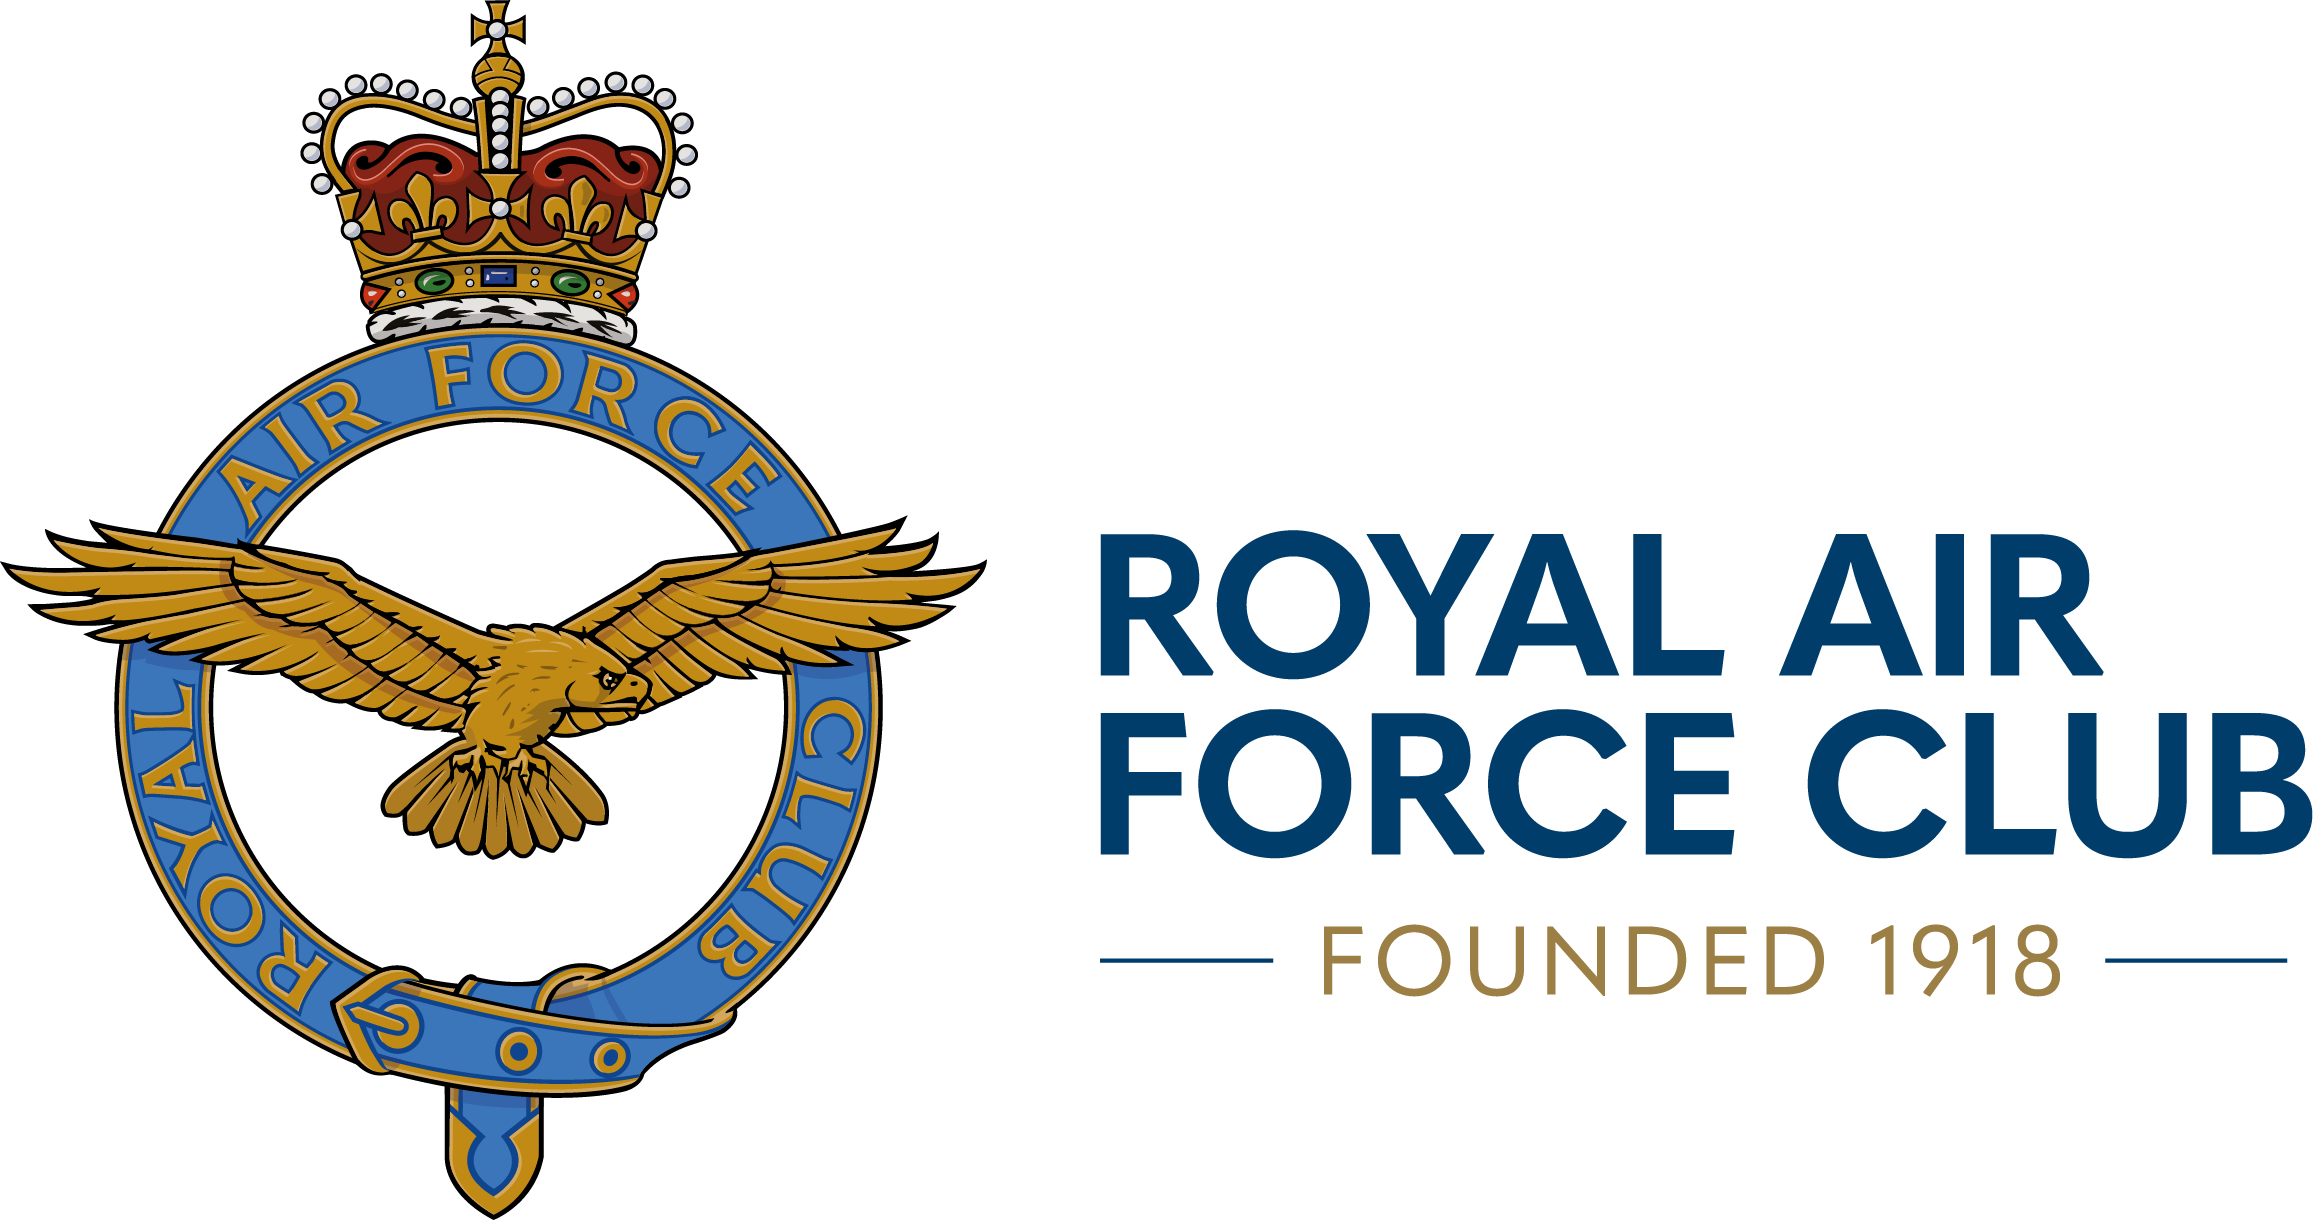 The Royal Air Force Club